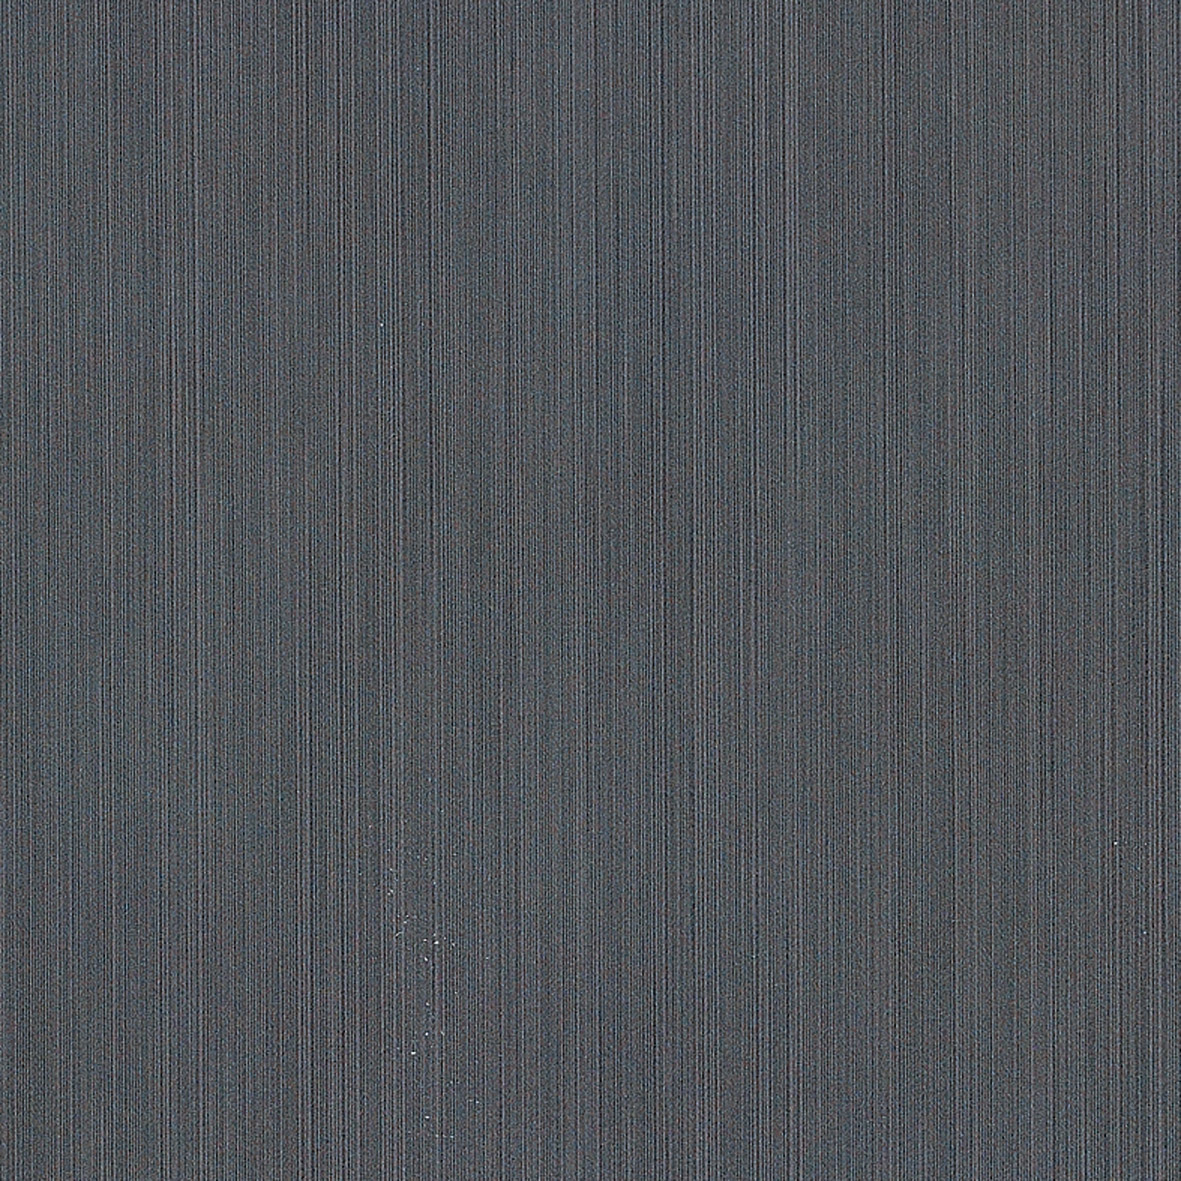 Porcelain Tile | Thin Stone Series - HSLBW6008 | by Hospitality Finishes